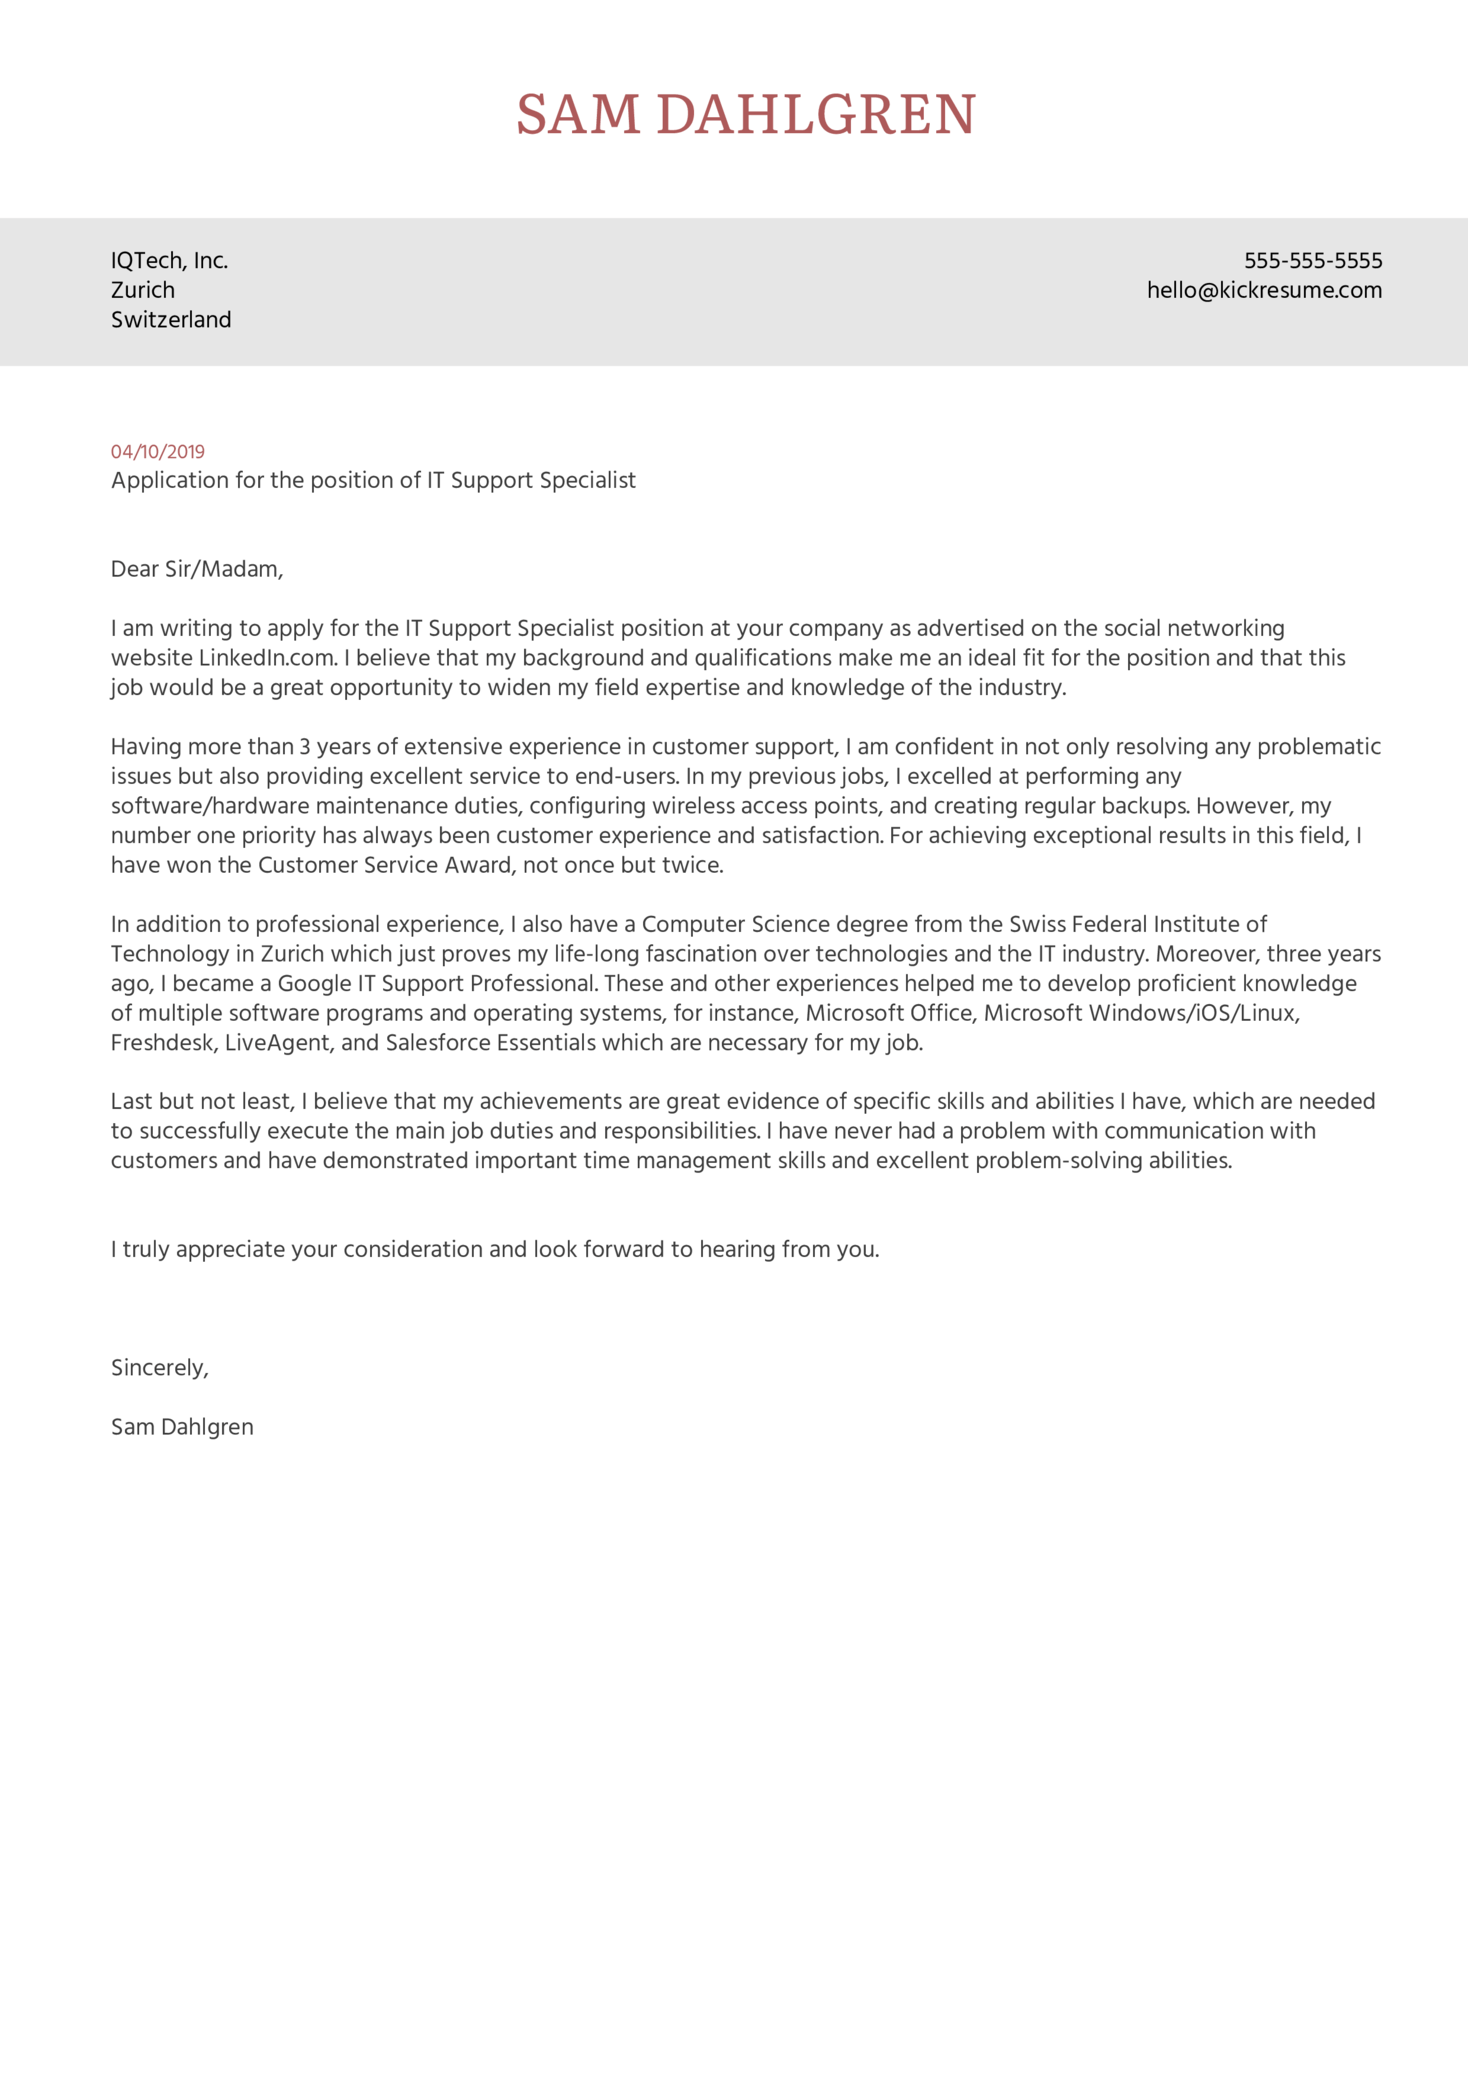 IT Support Specialist Cover Letter Sample